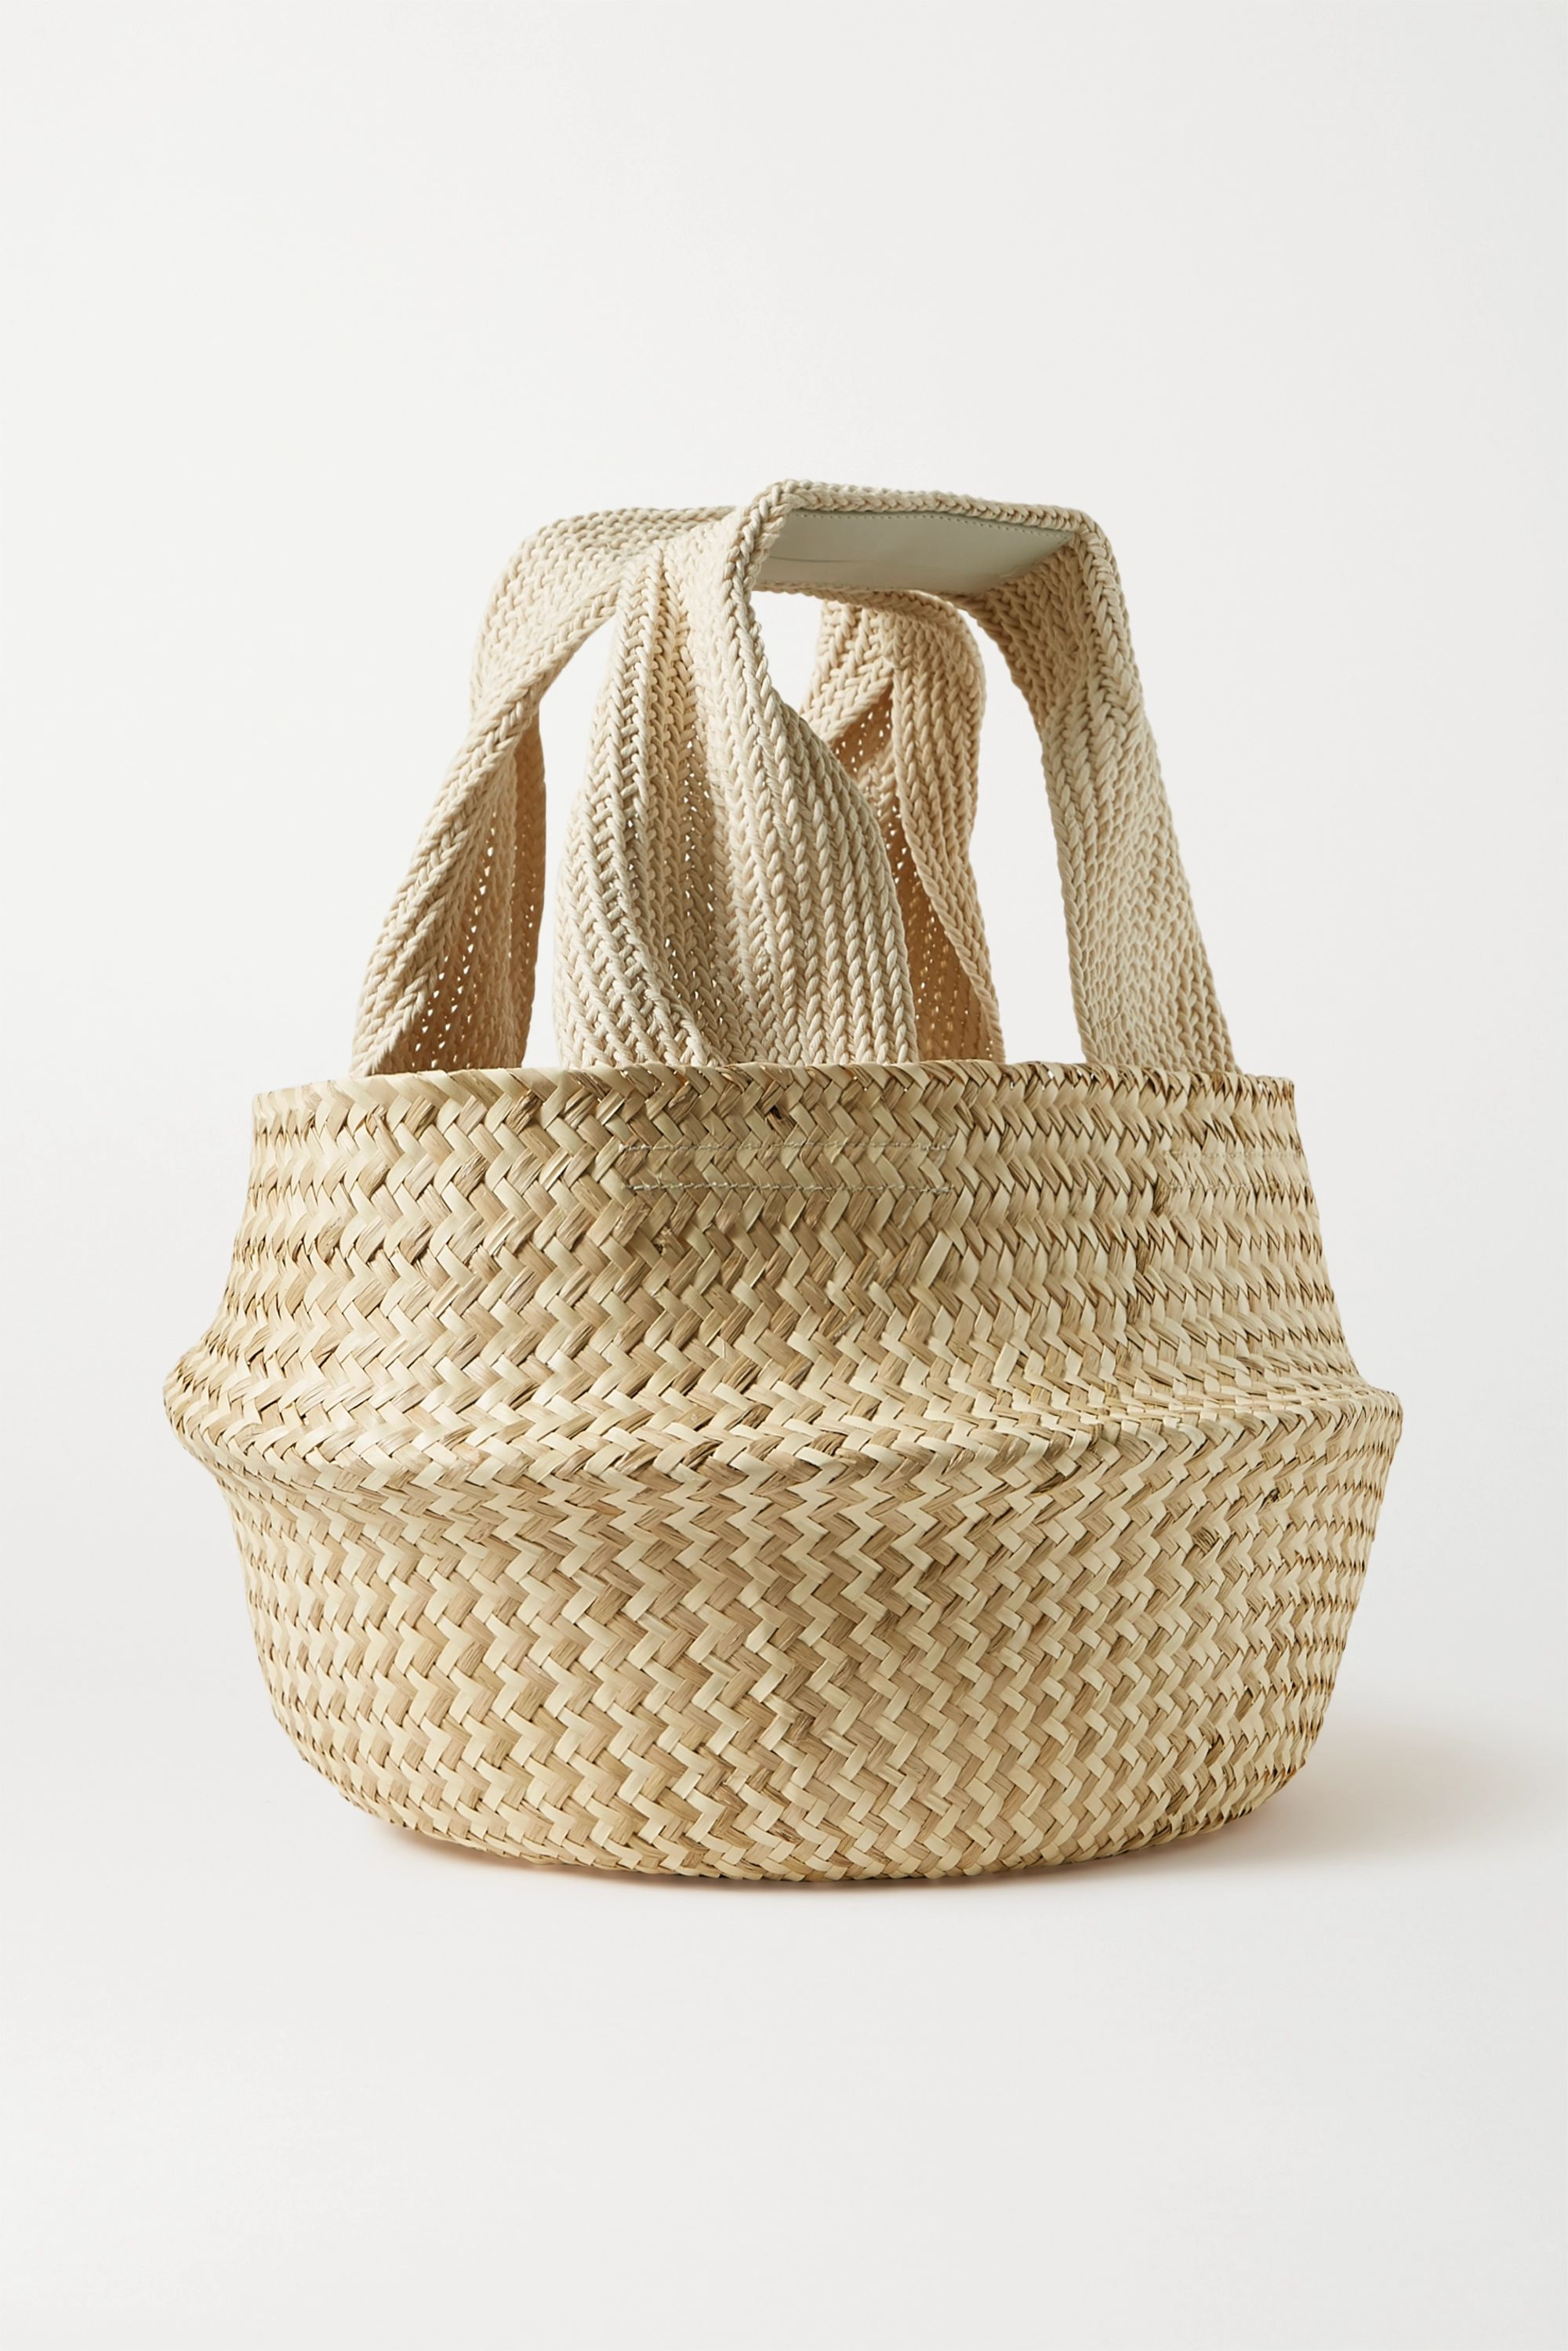 JW Anderson Basket leather-trimmed woven raffia tote